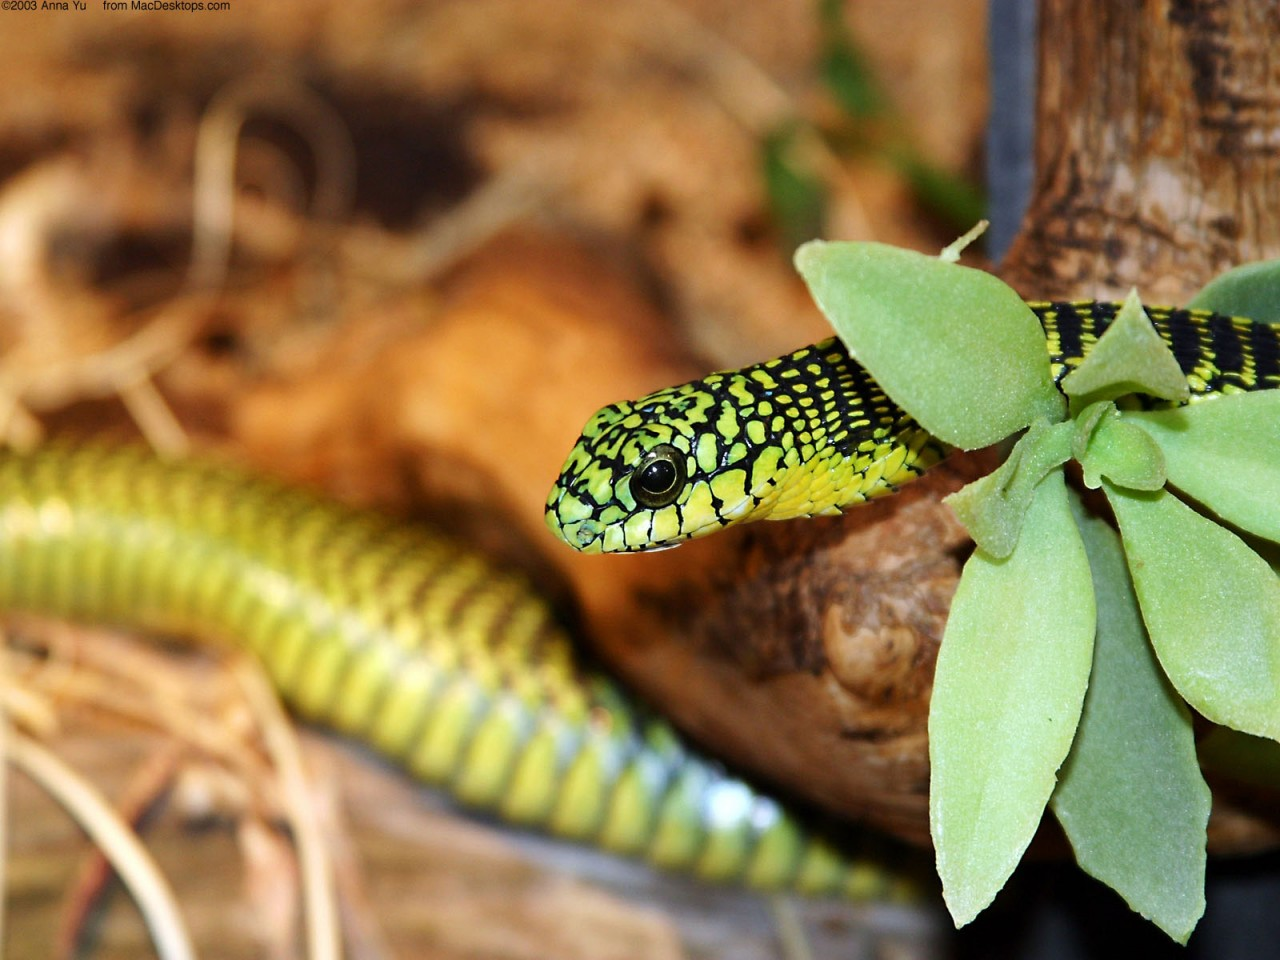 Hd 3d Nature Wallpapers 1080p Widescreen A Green Snake 2 Wallpapers Hd Wallpapers Id 4931